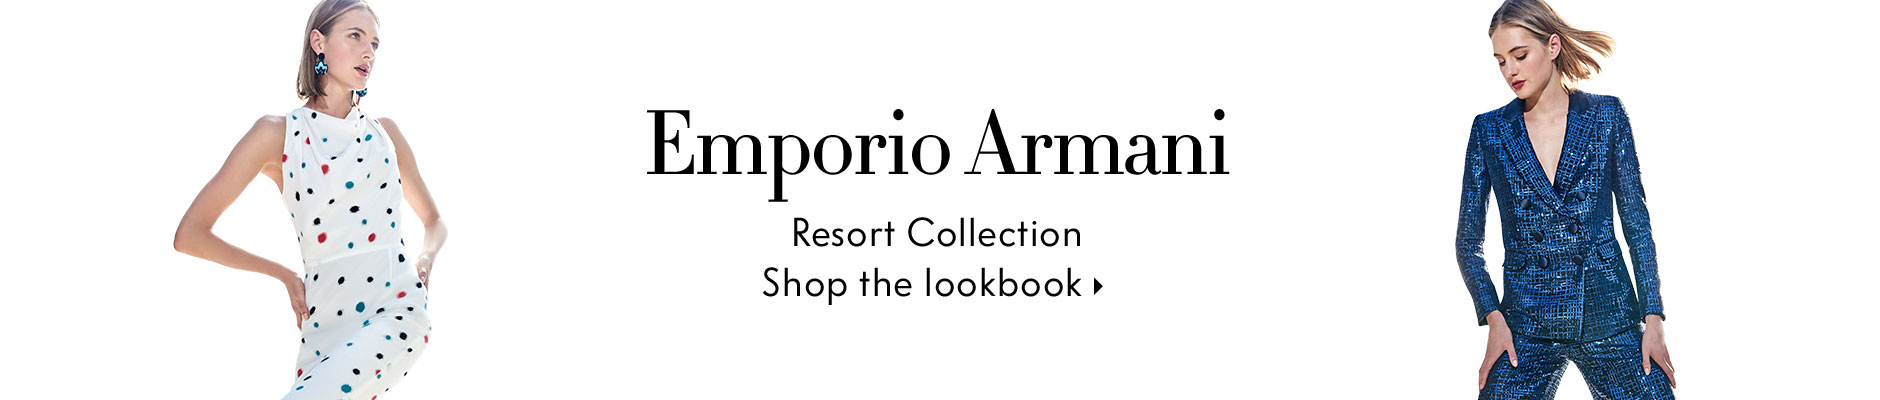 Emporio Armani  Lookbook